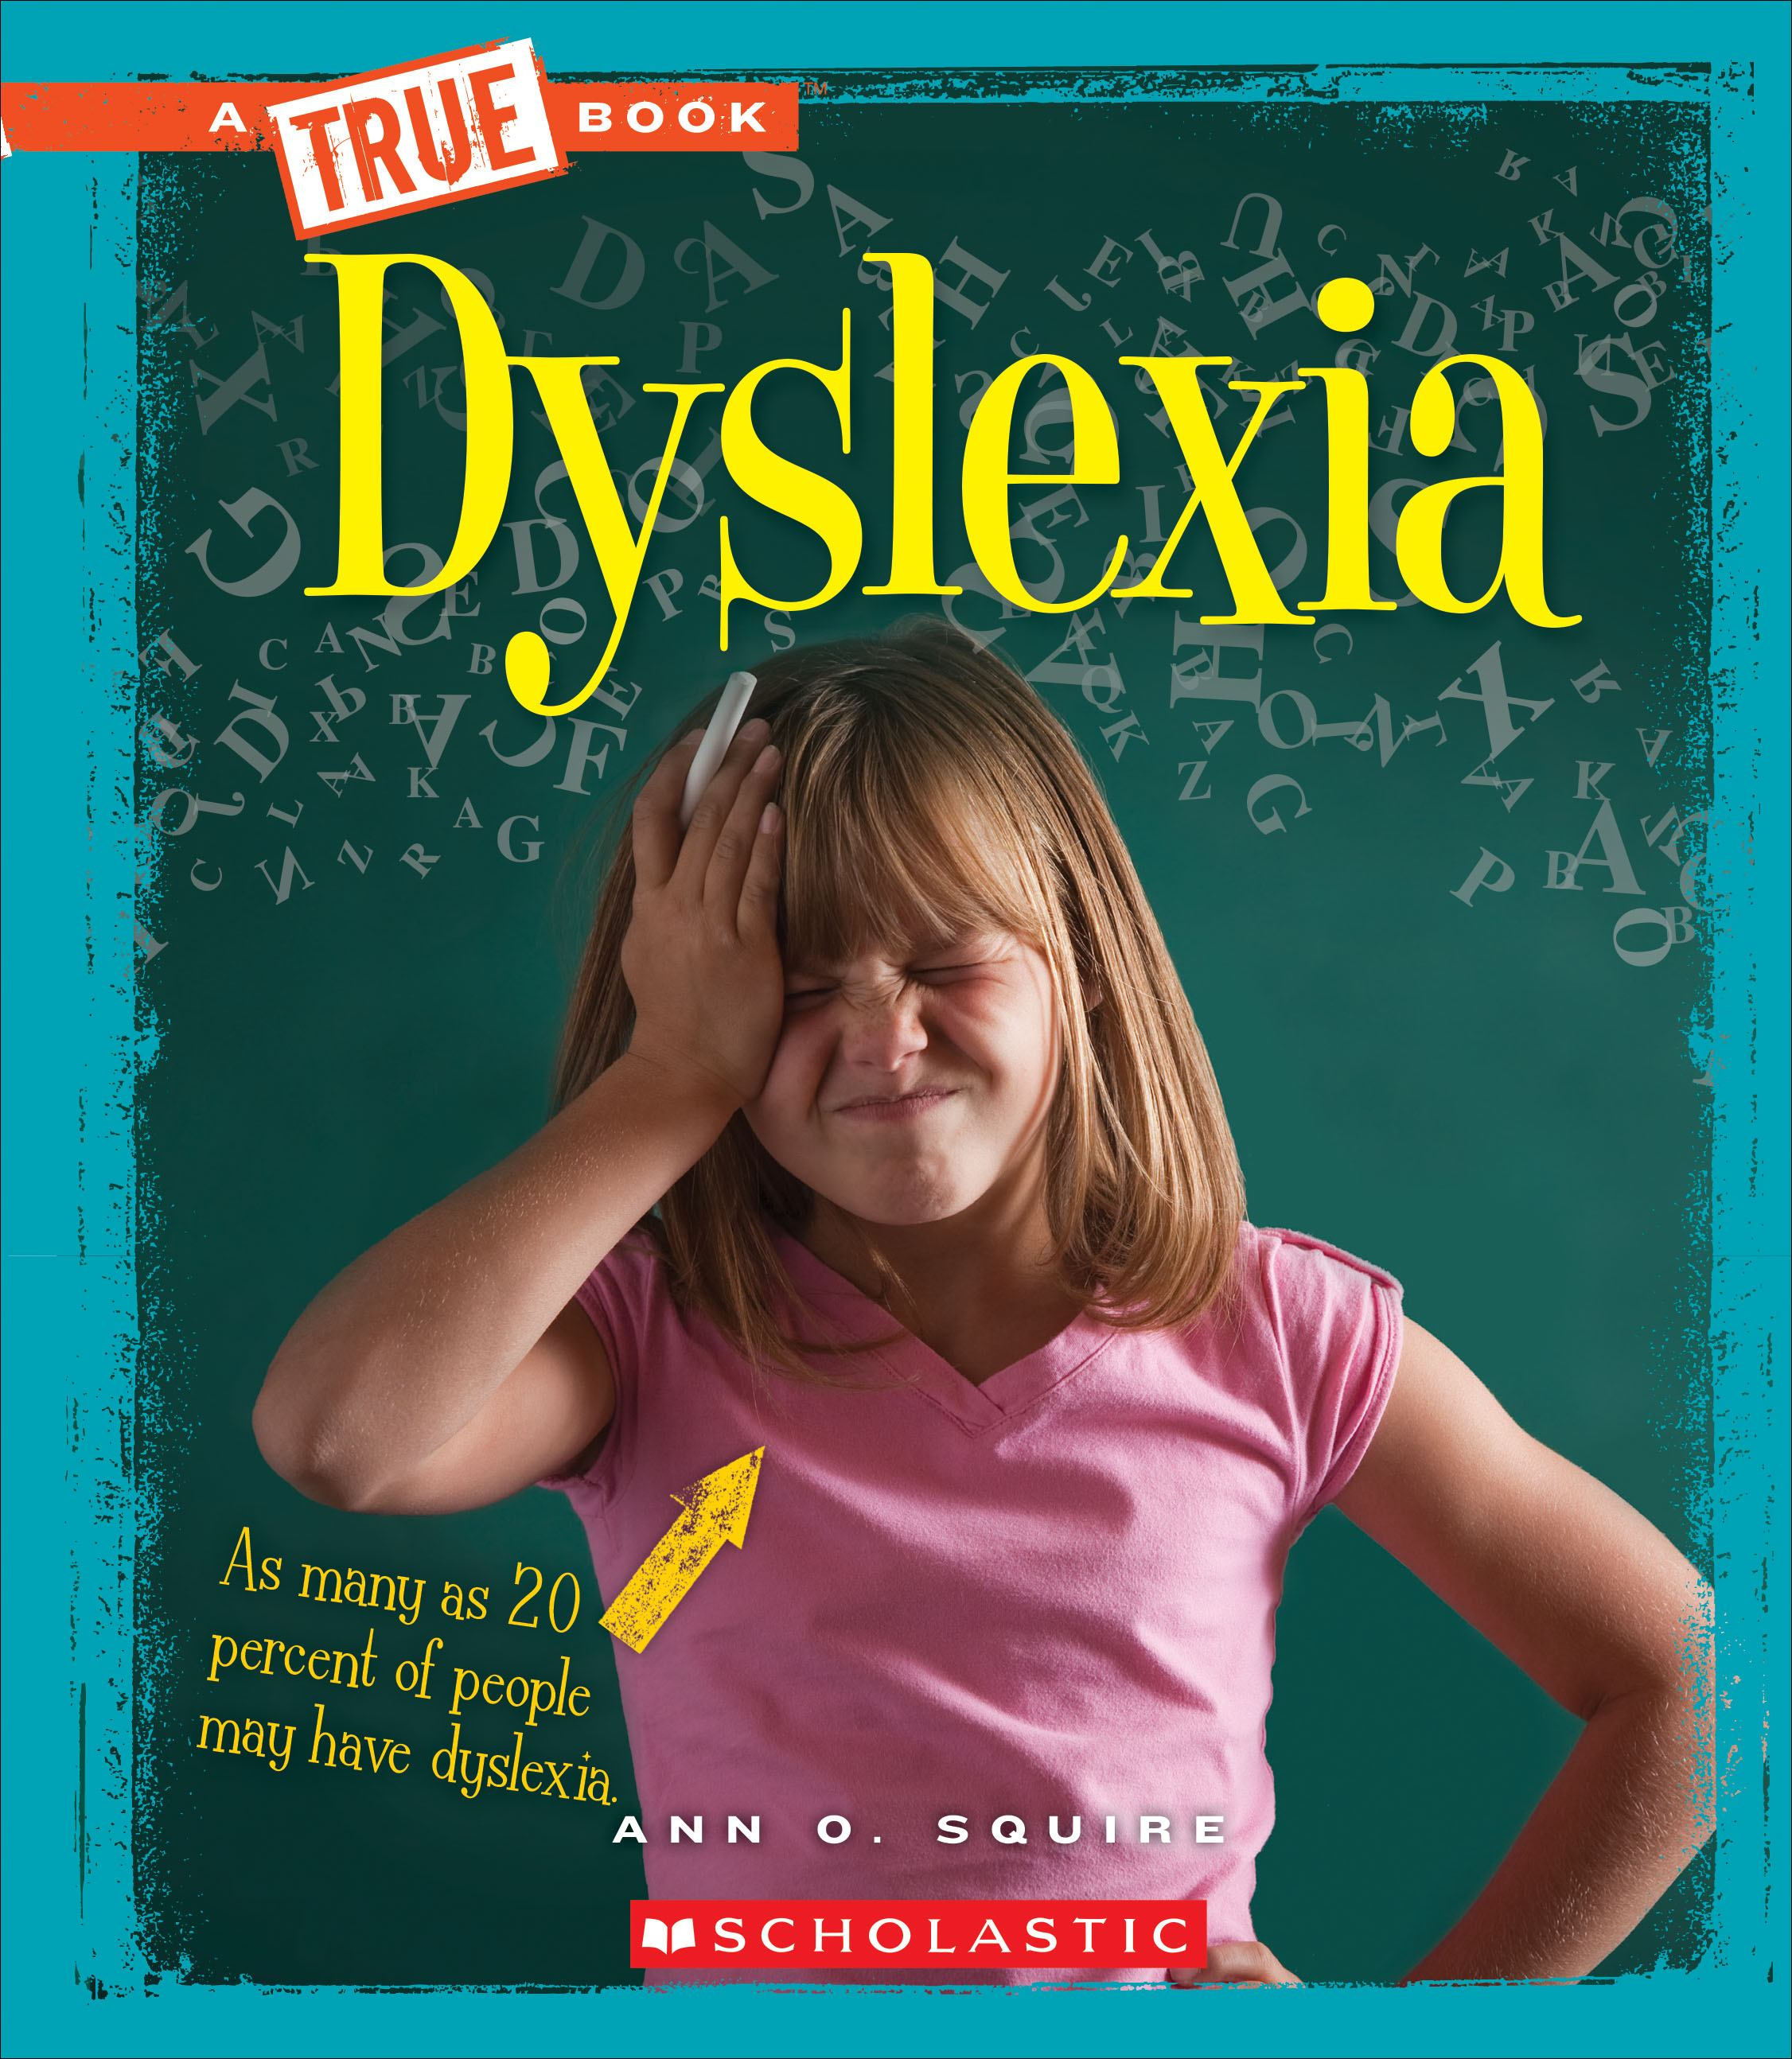 Dyslexia A True Book Health Series by Ann O. Squire